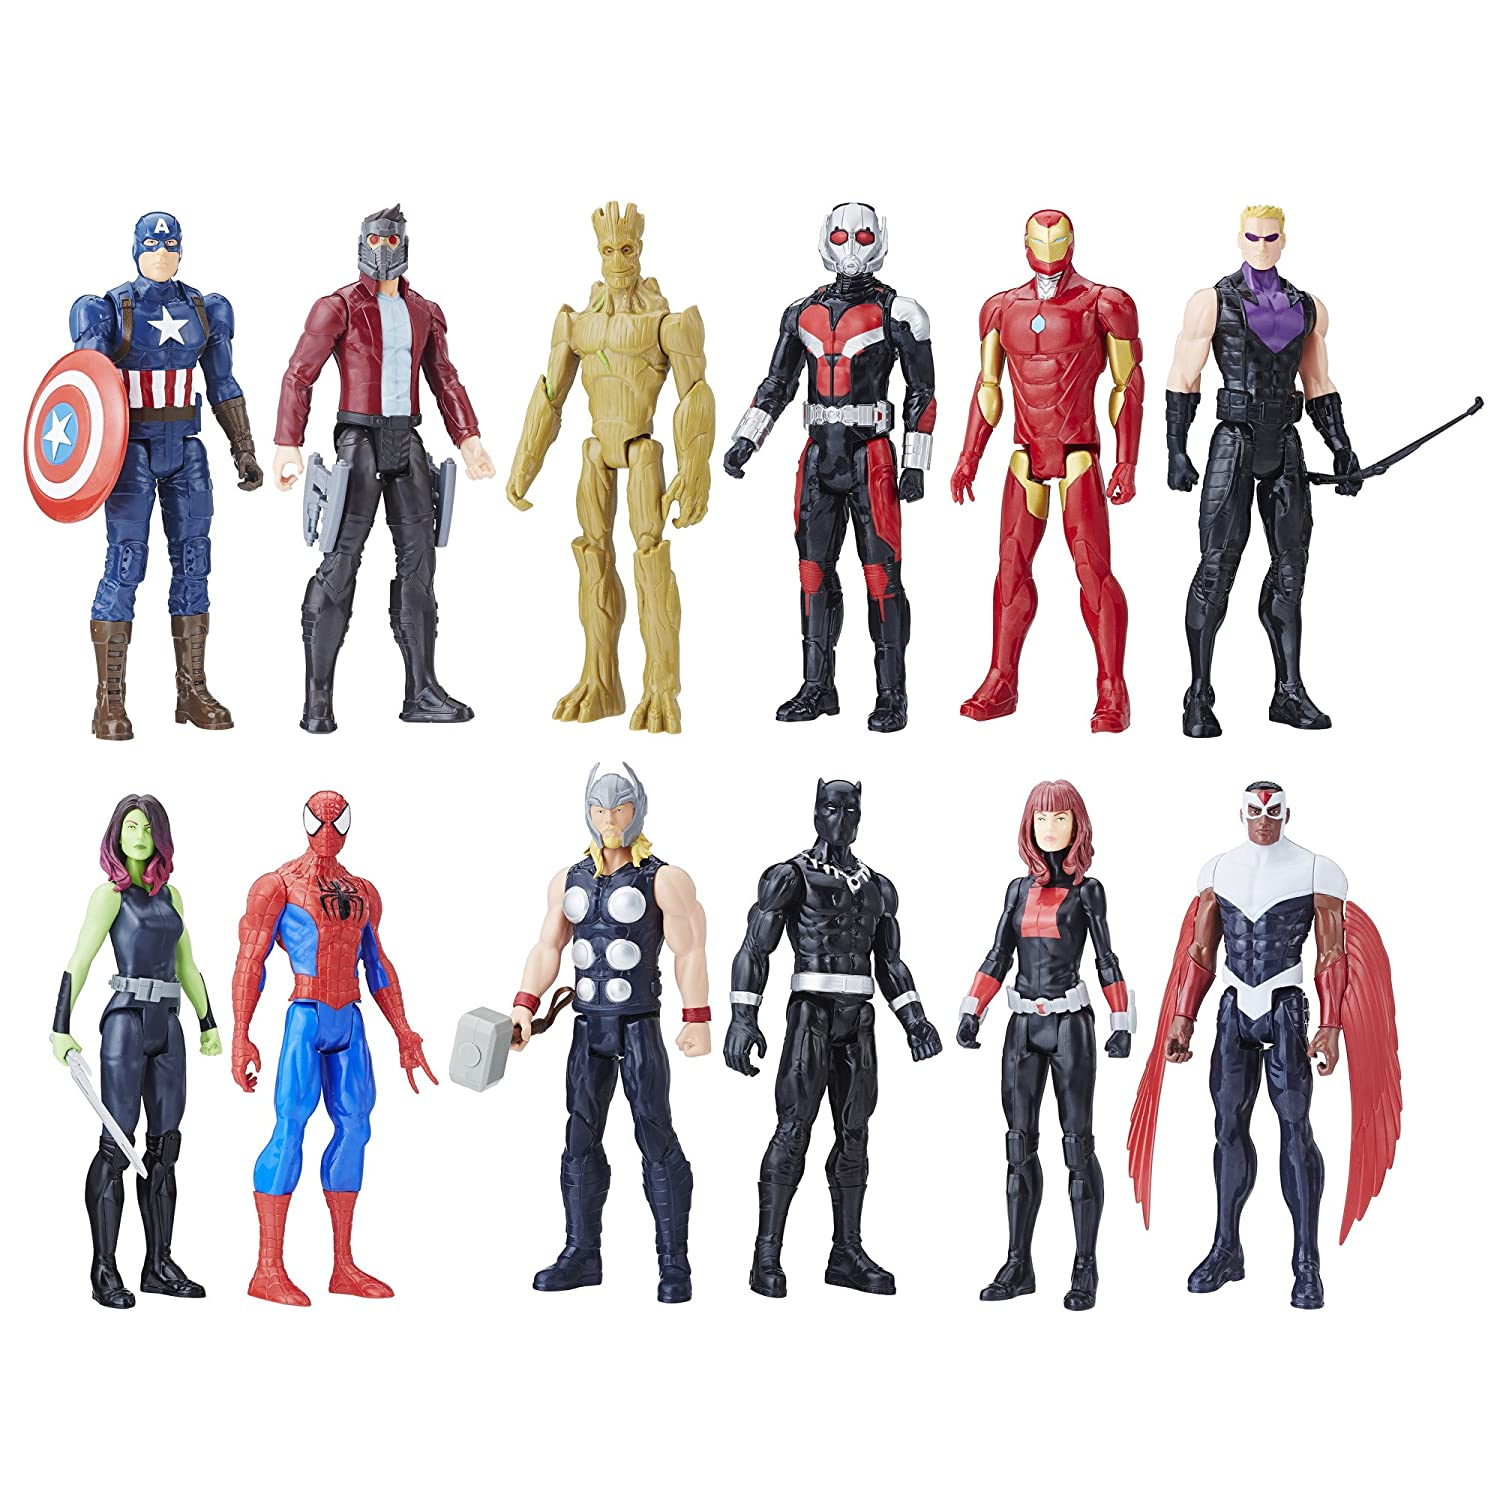 Buy Avengers Titan Hero Series 12 Pack, Action Figures, Ages